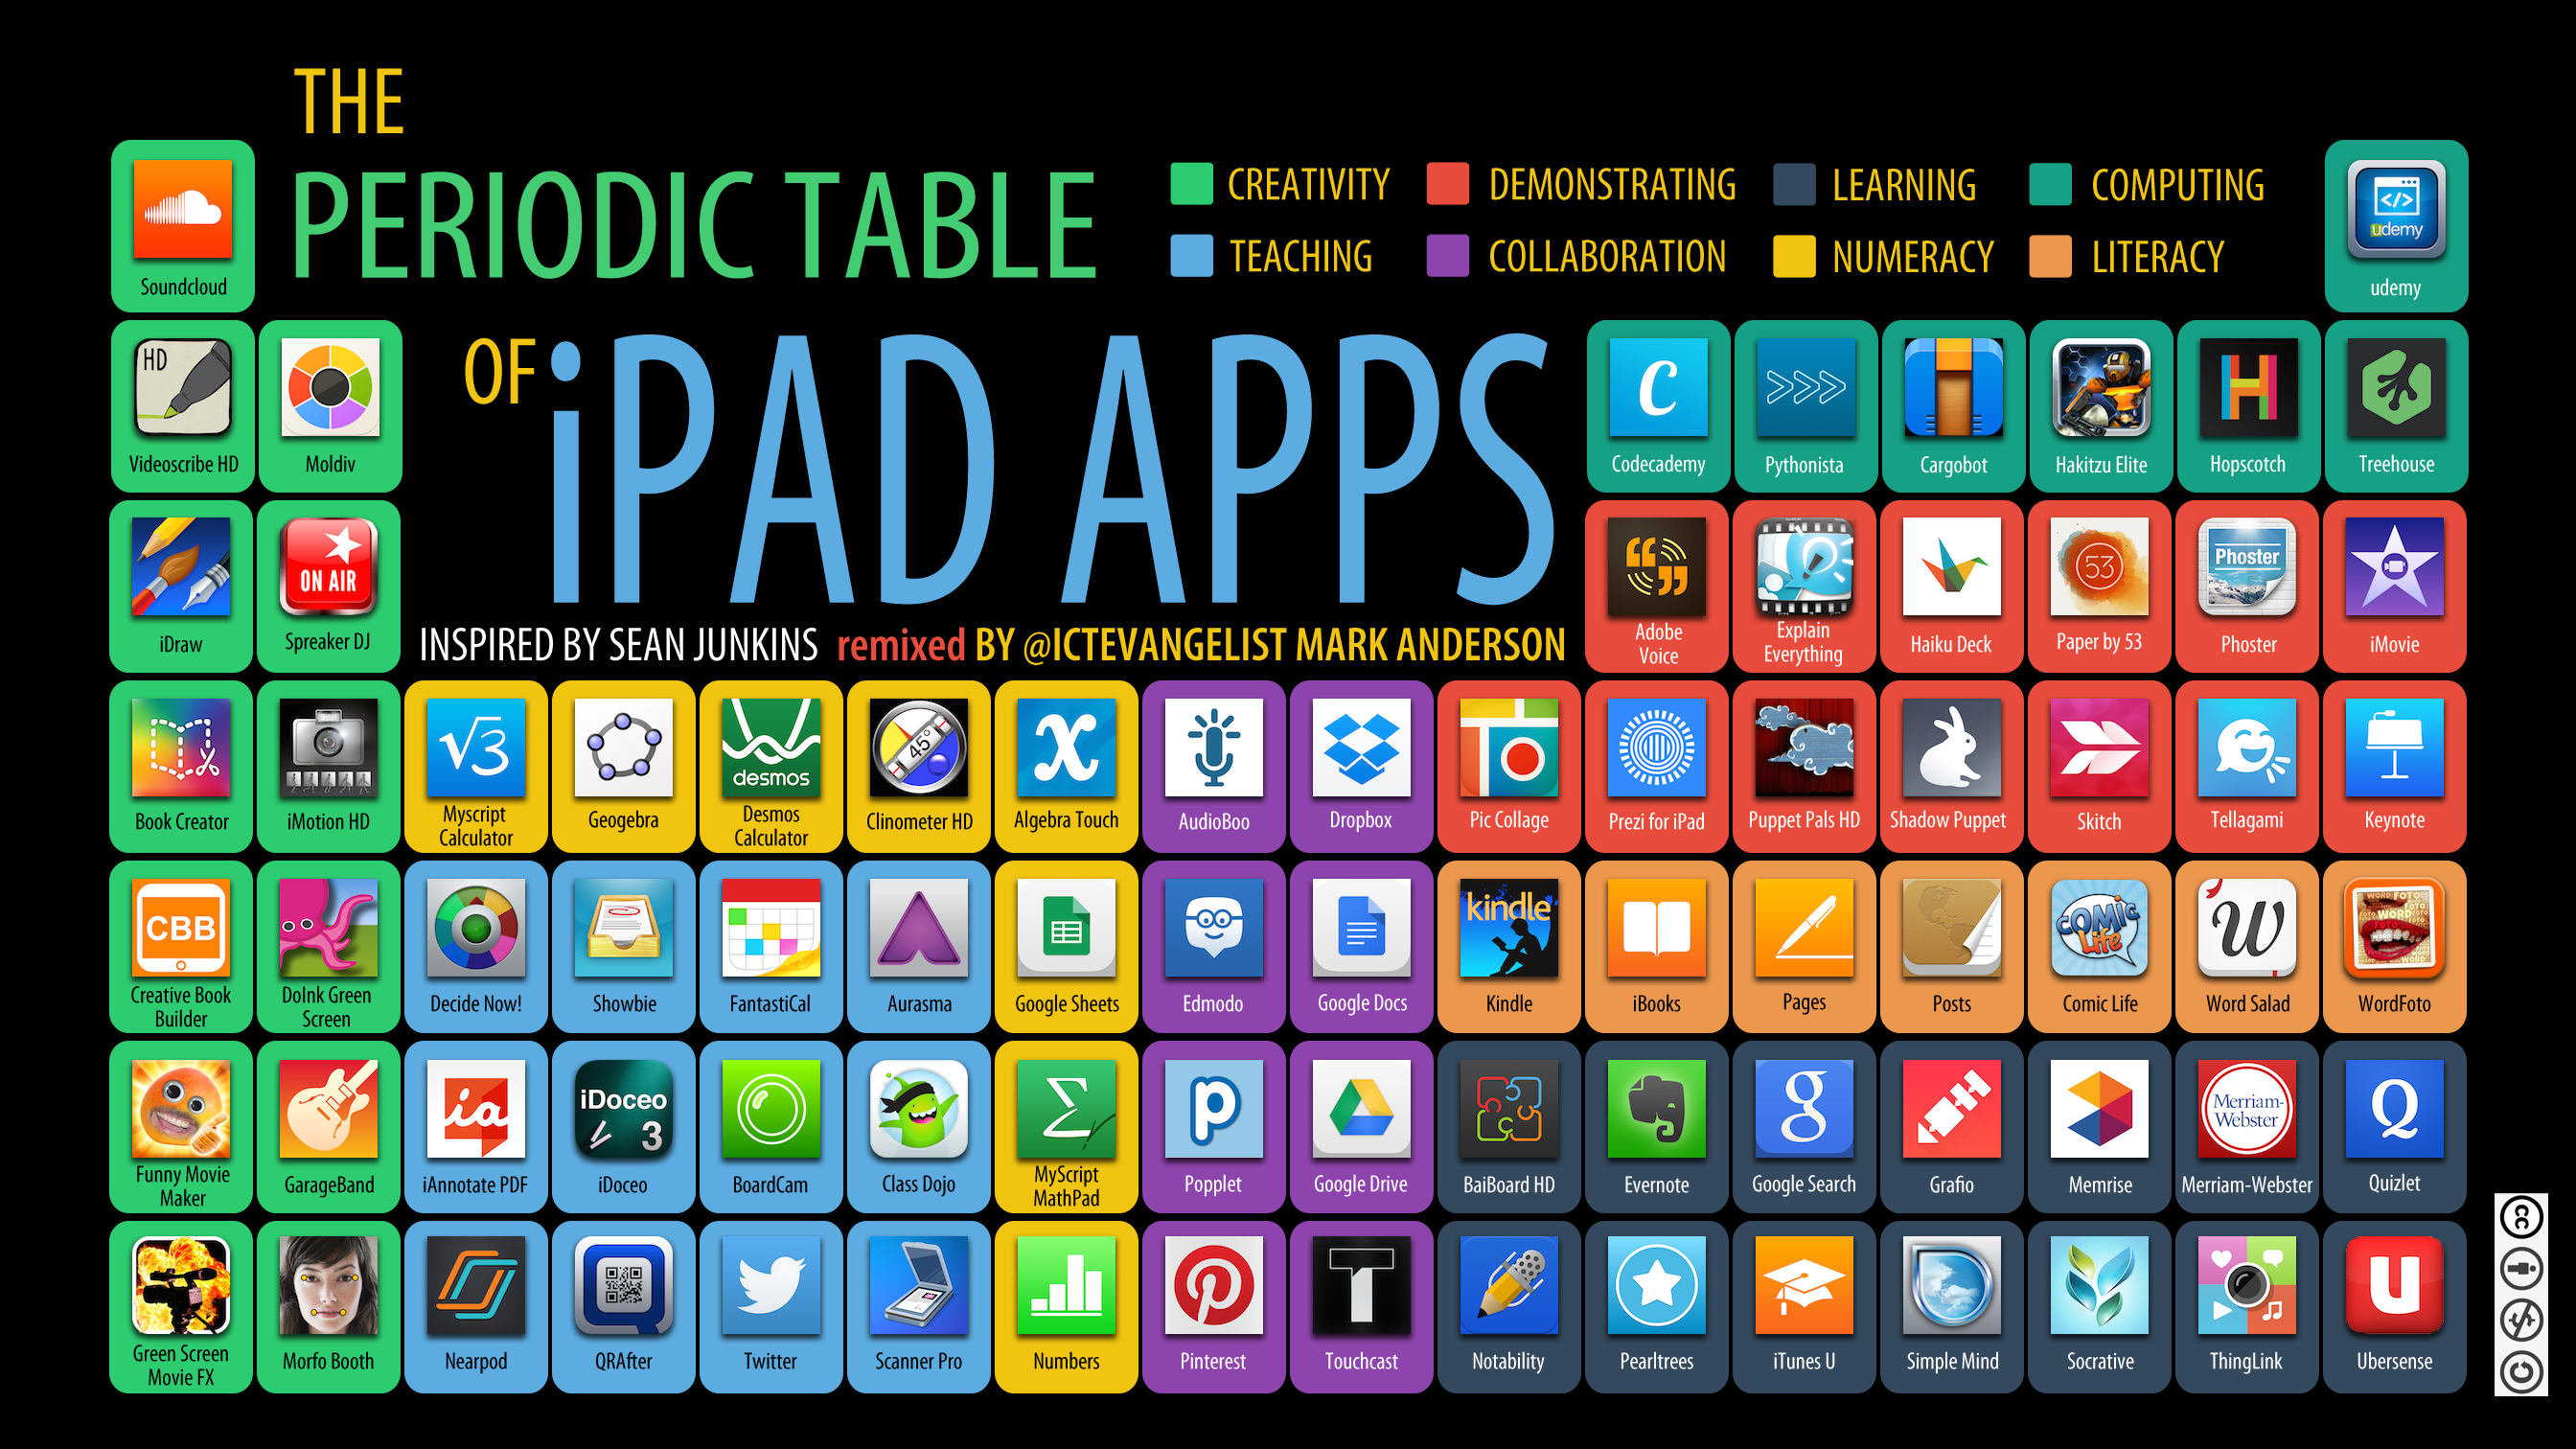 The periodic table from its classic design to use in popular culture ipad apps urtaz